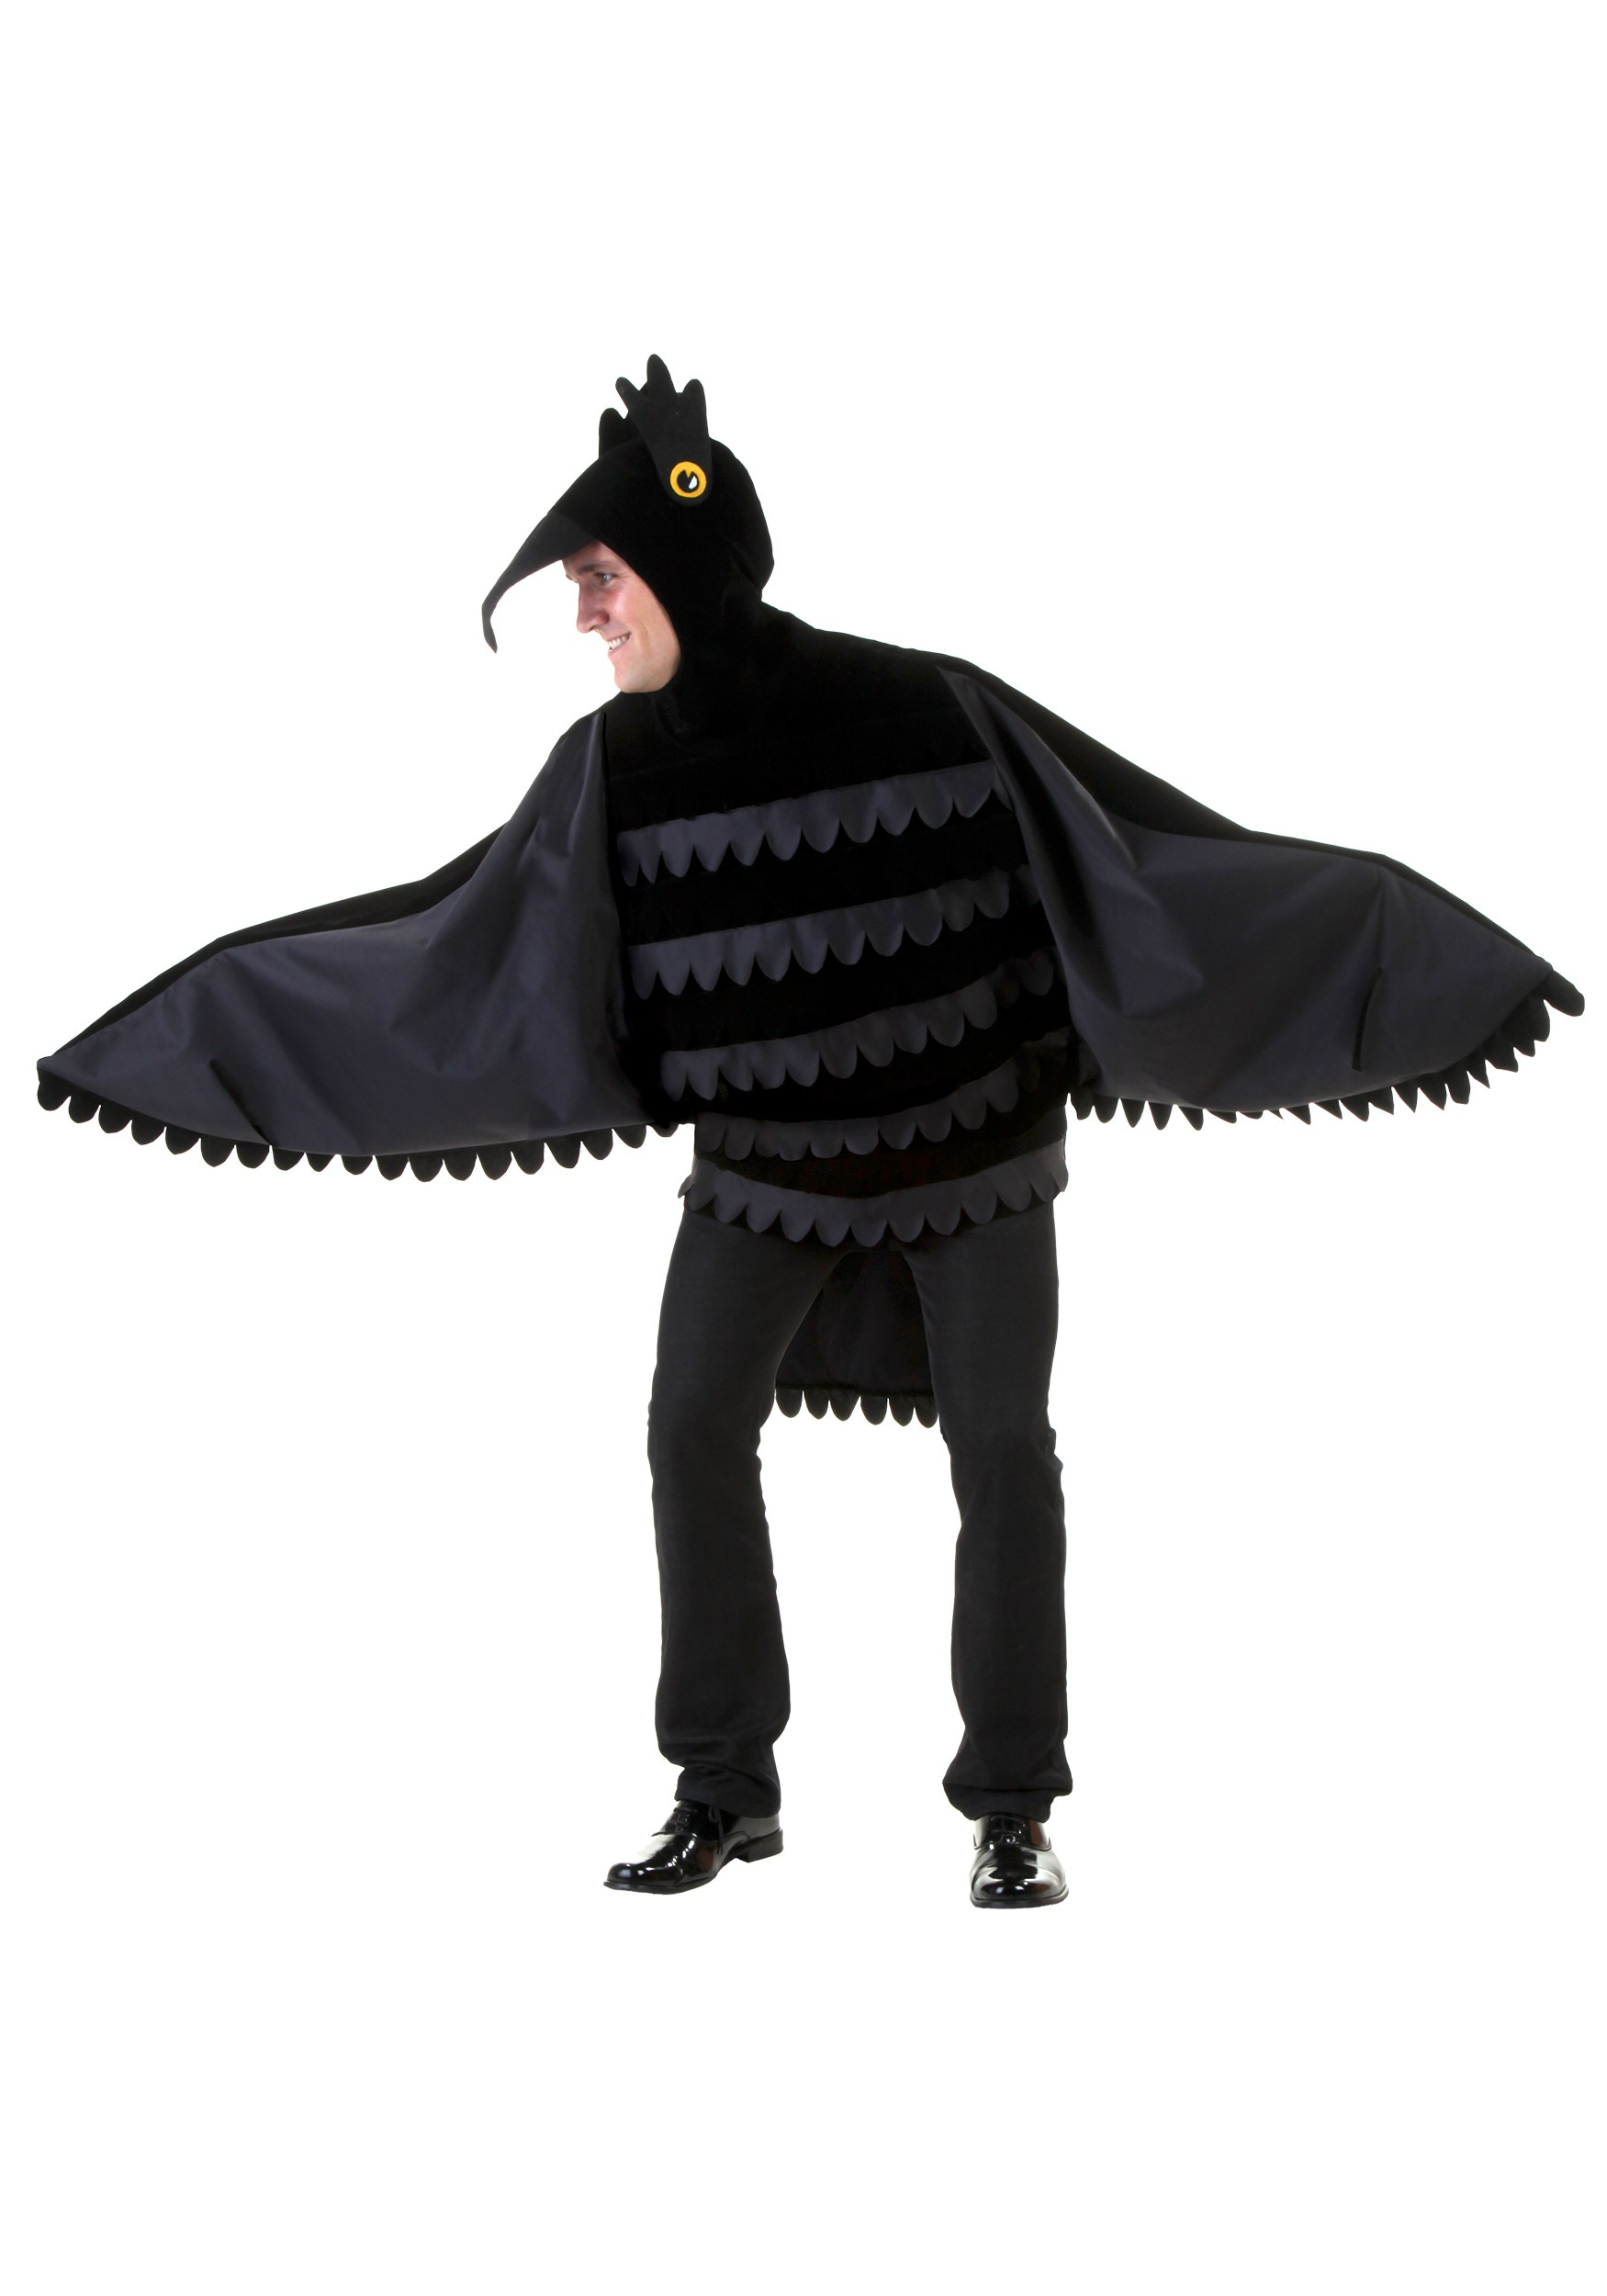 Adult Raven/Crow Costume FUN2686AD